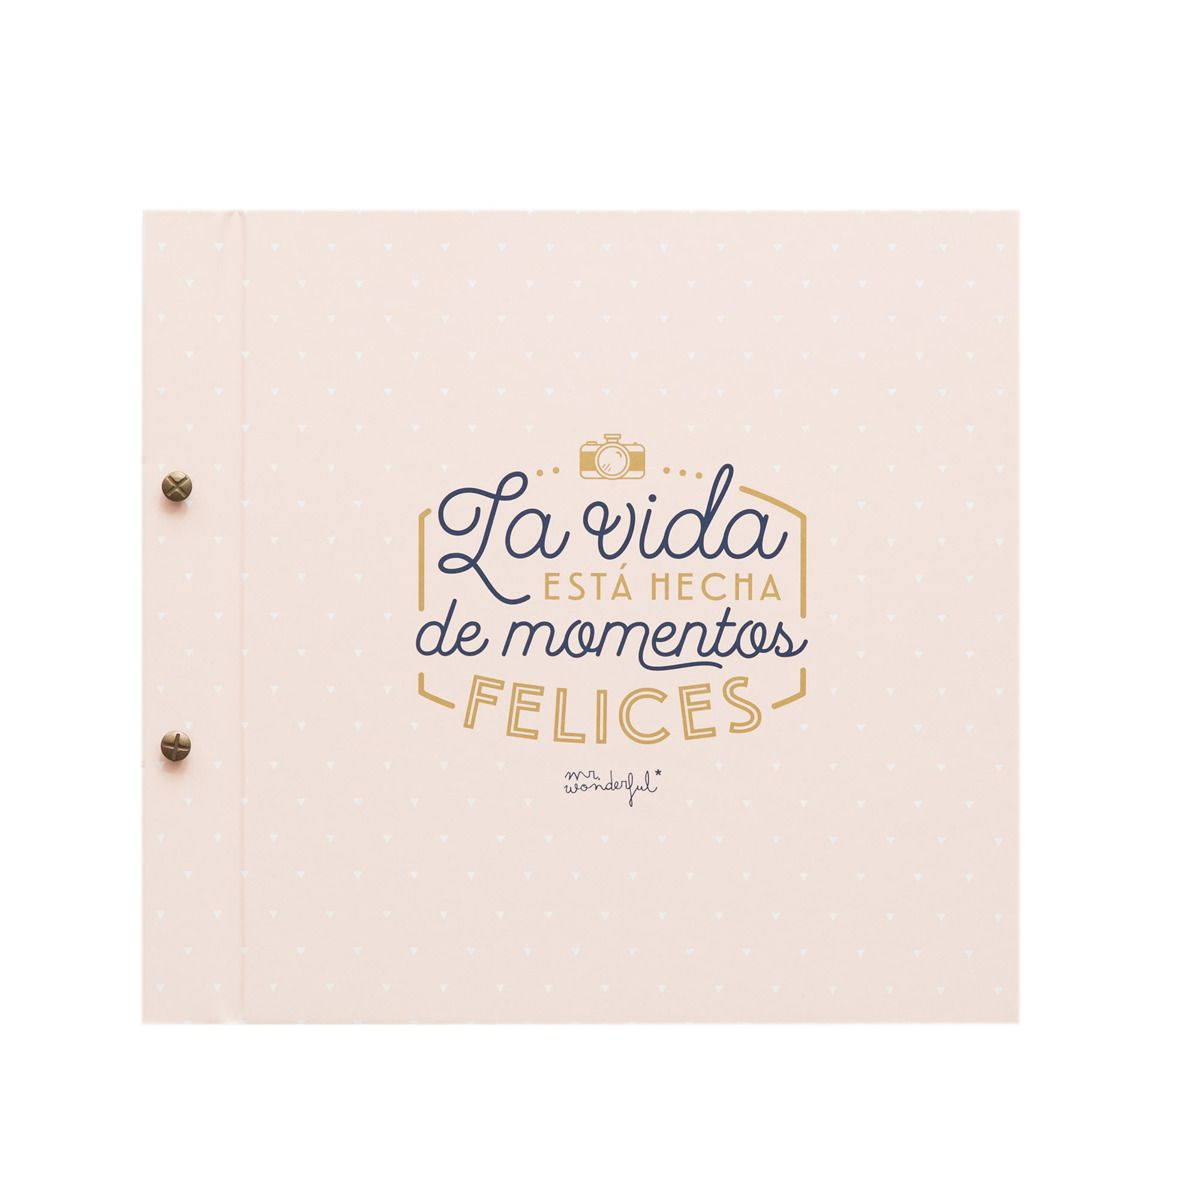 Lbum Mr Wonderful La Vida Est Hecha De Momentos Felices  ~ Comprar Agenda Mr Wonderful El Corte Ingles